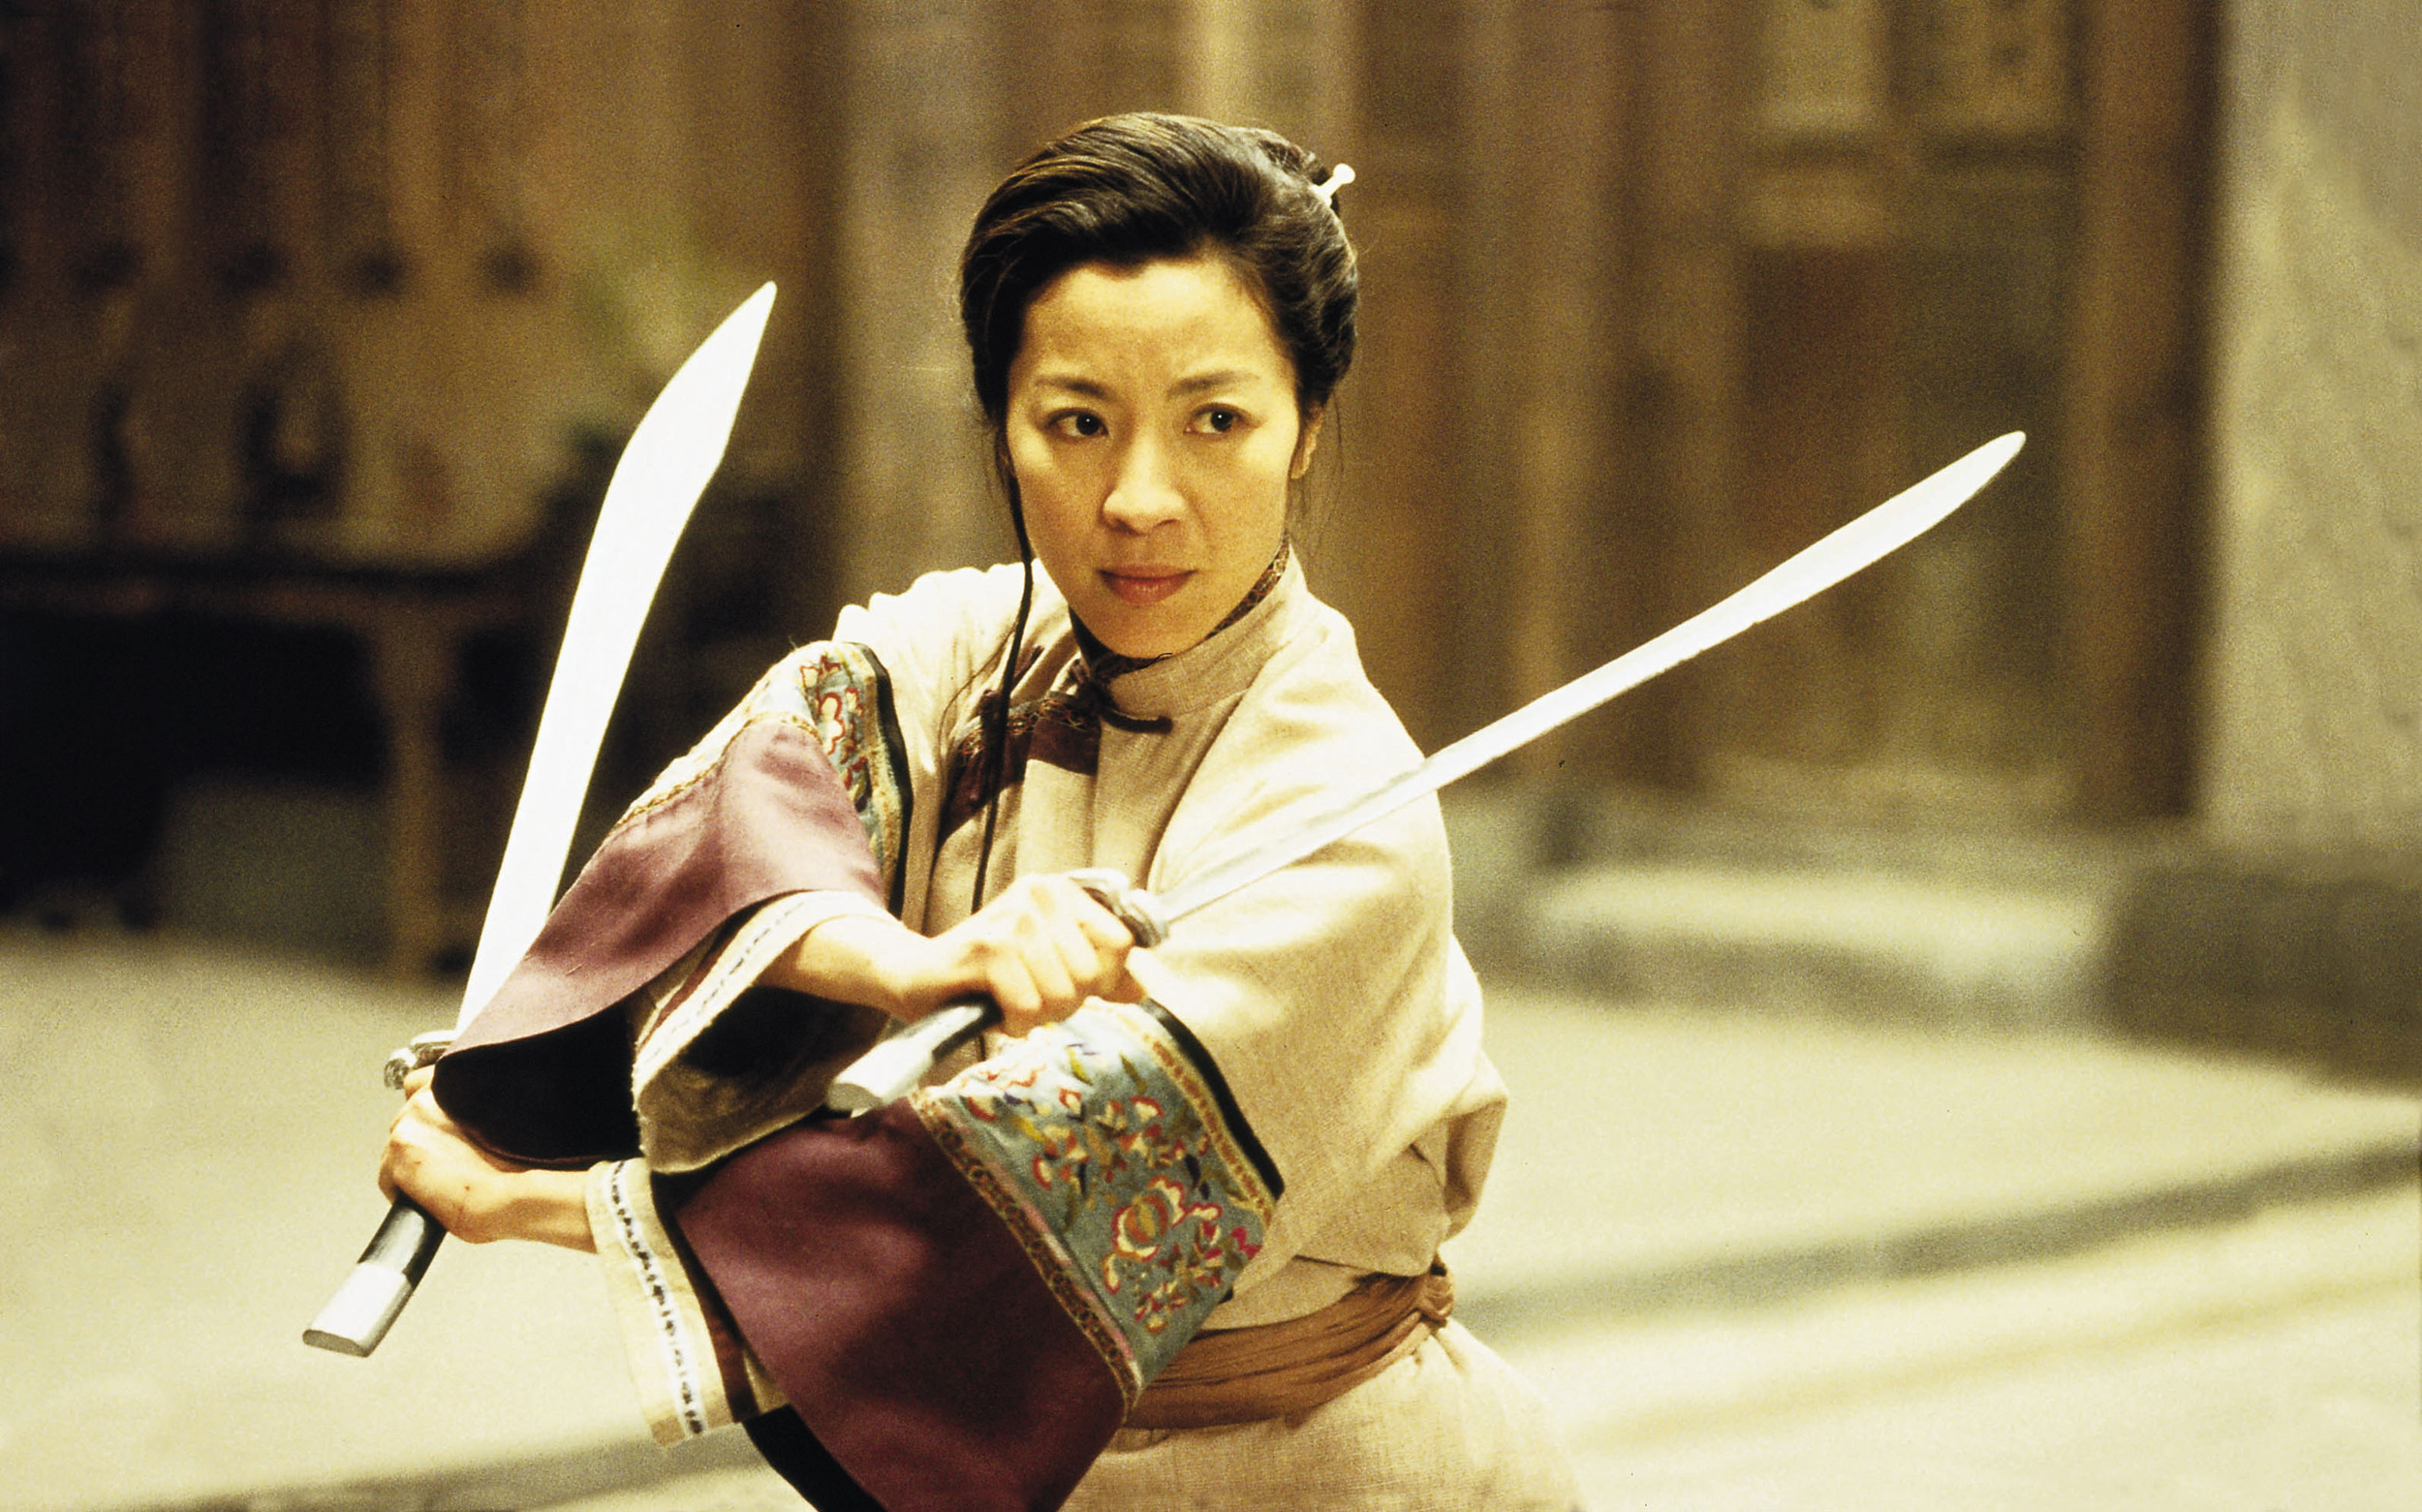 """Michelle Yeoh stars in Ang Lee's film """"Crouching Tiger, Hidden Dragon"""" in this undated handout photo released to the media on July 17, 2012. Best Foreign Film Oscar-winning """"Crouching Tiger, Hidden Dragon"""" became the highest grossing foreign film in the U.S. in 2001. Source: Edko Films via Bloomberg EDITOR'S NOTE: EDITORIAL USE ONLY. NO SALES."""